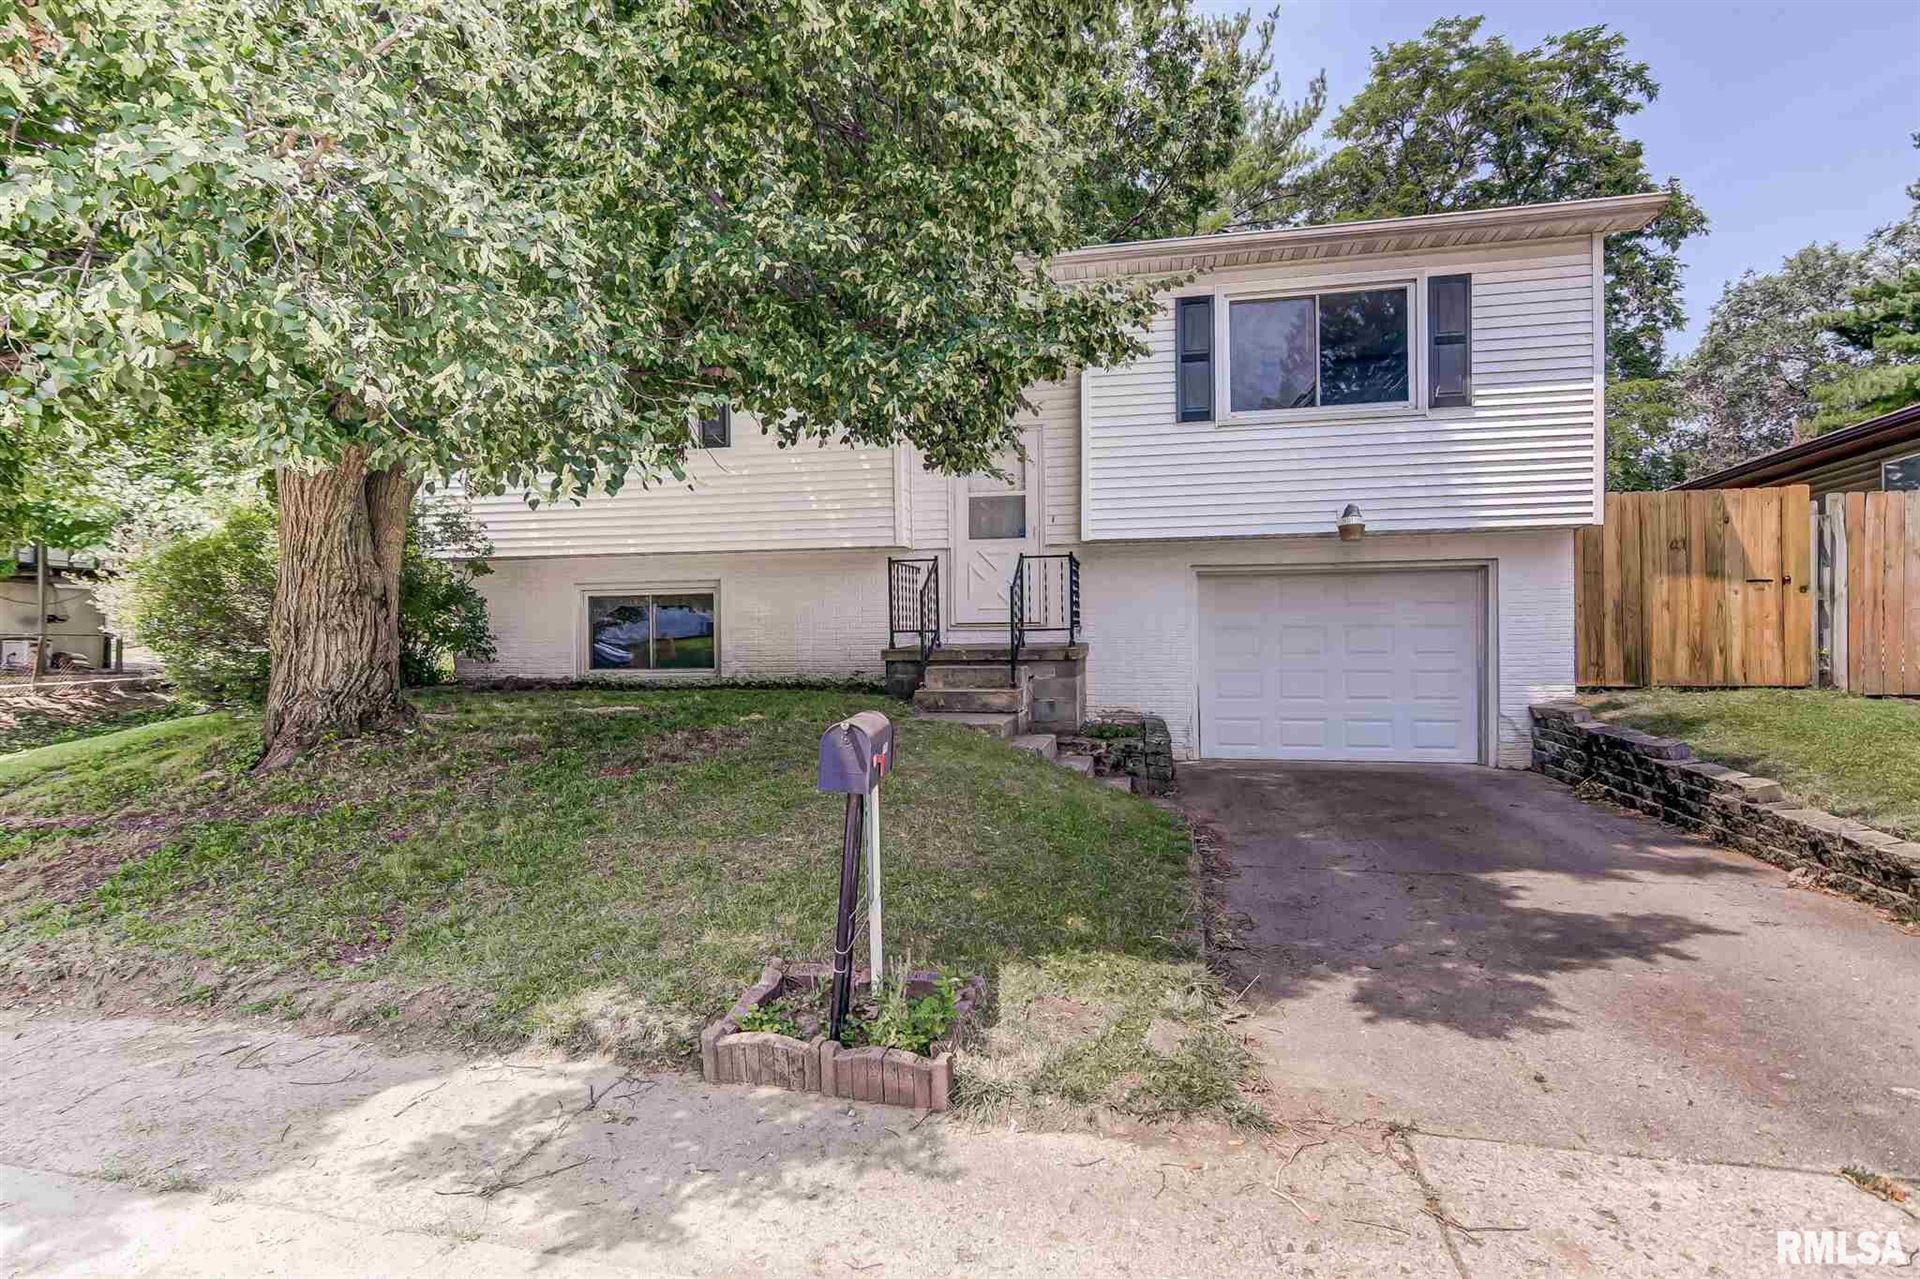 #3117 Camereigh, Springfield, IL 62707 - MLS#: CA1008331